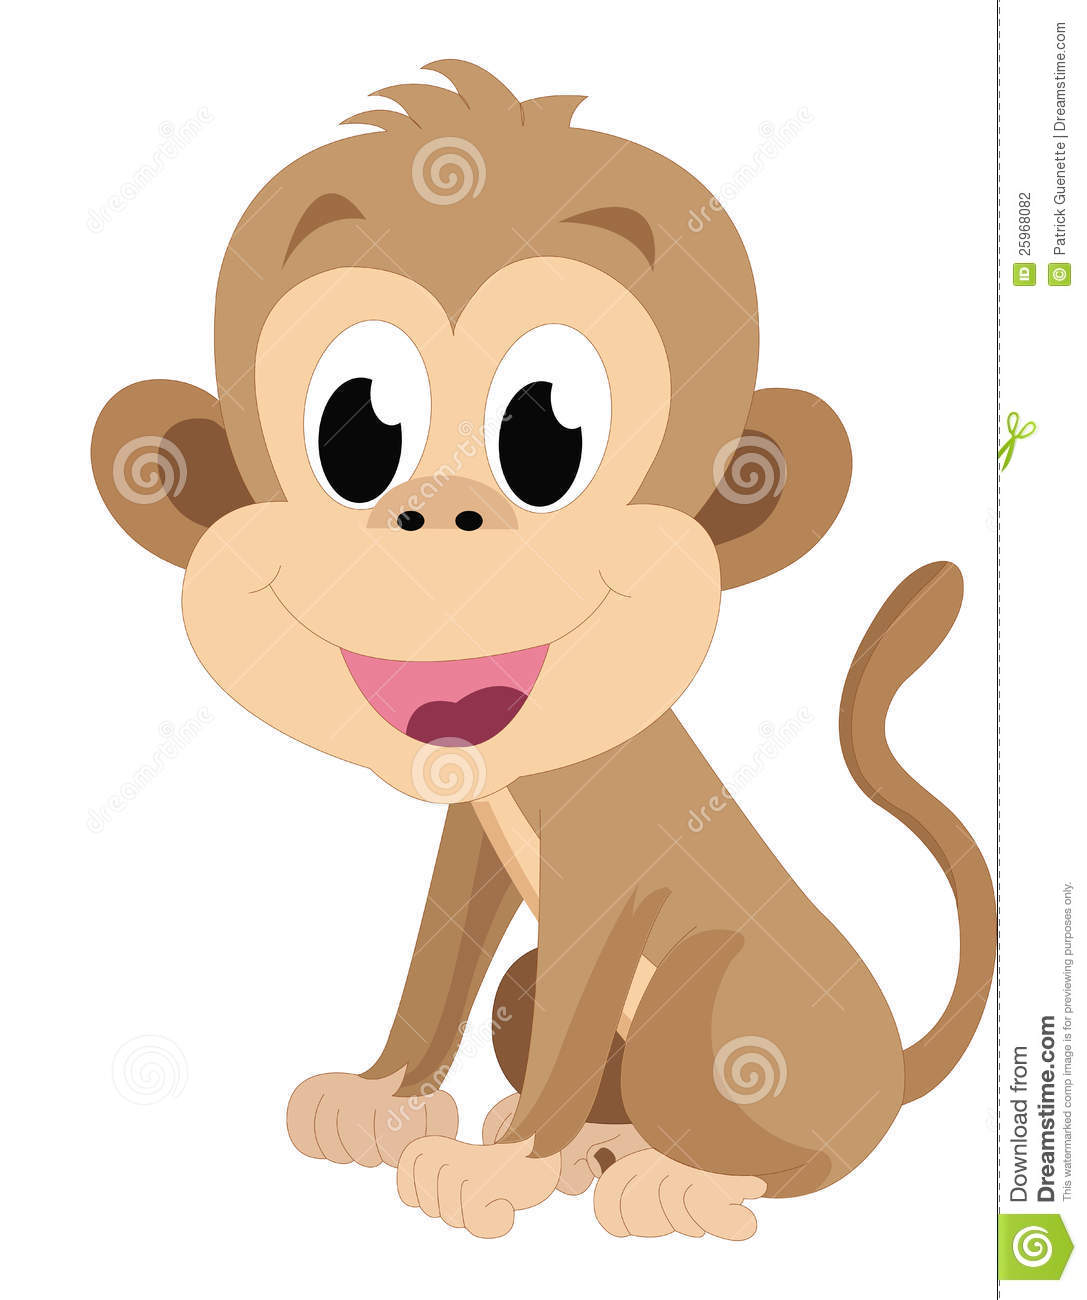 Baby Monkey, Illustration Stock Photography - Image: 25968082